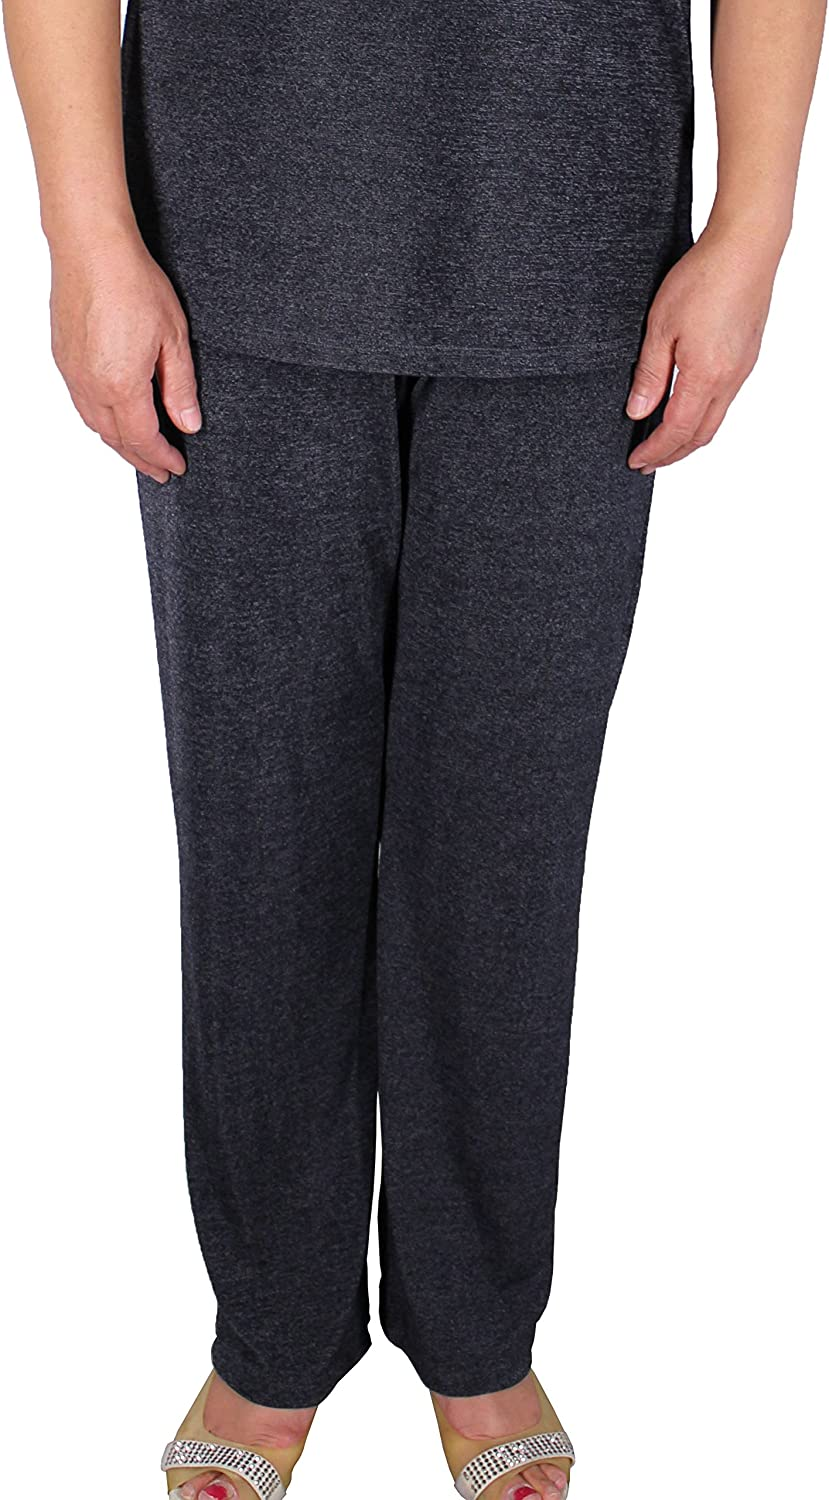 Calison Women's Elastic High Waist Pull On Long Pants Made in USA Grey 2X